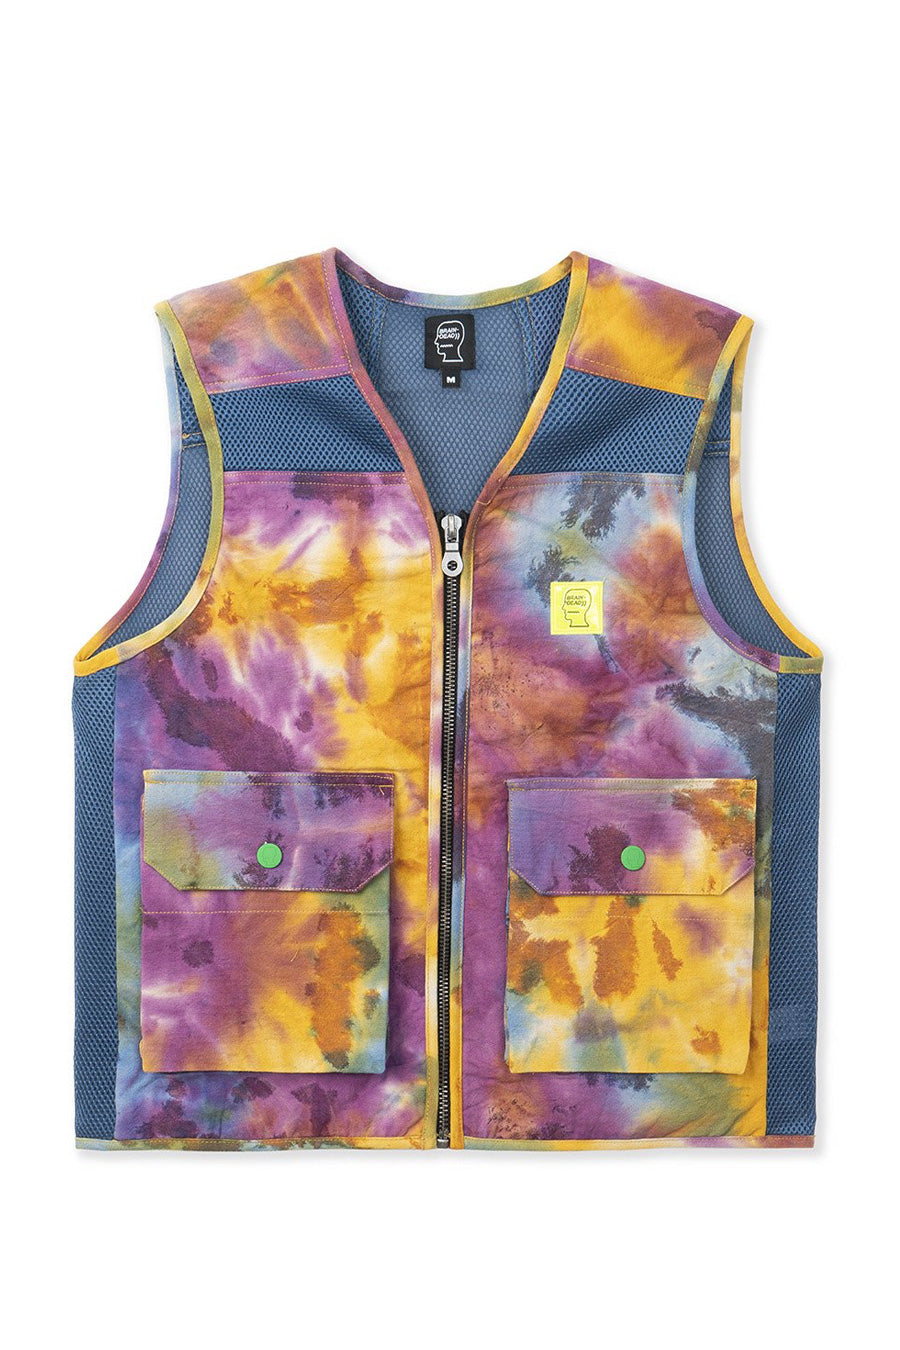 Brain Dead - Dyed Canvas Spacer Mesh Tactical Vest